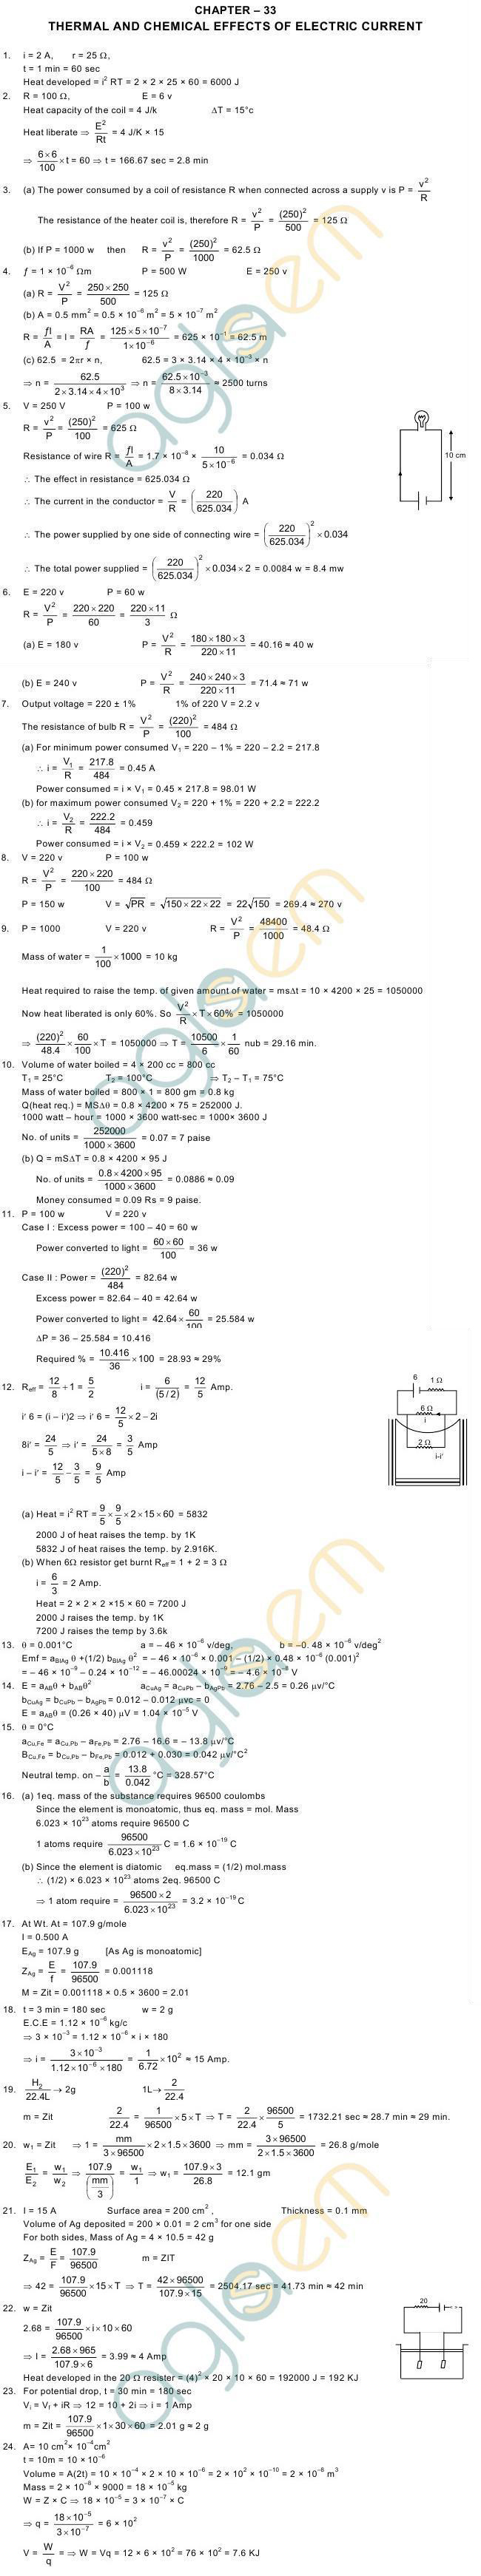 electric current in conductors hc verma solutions pdf